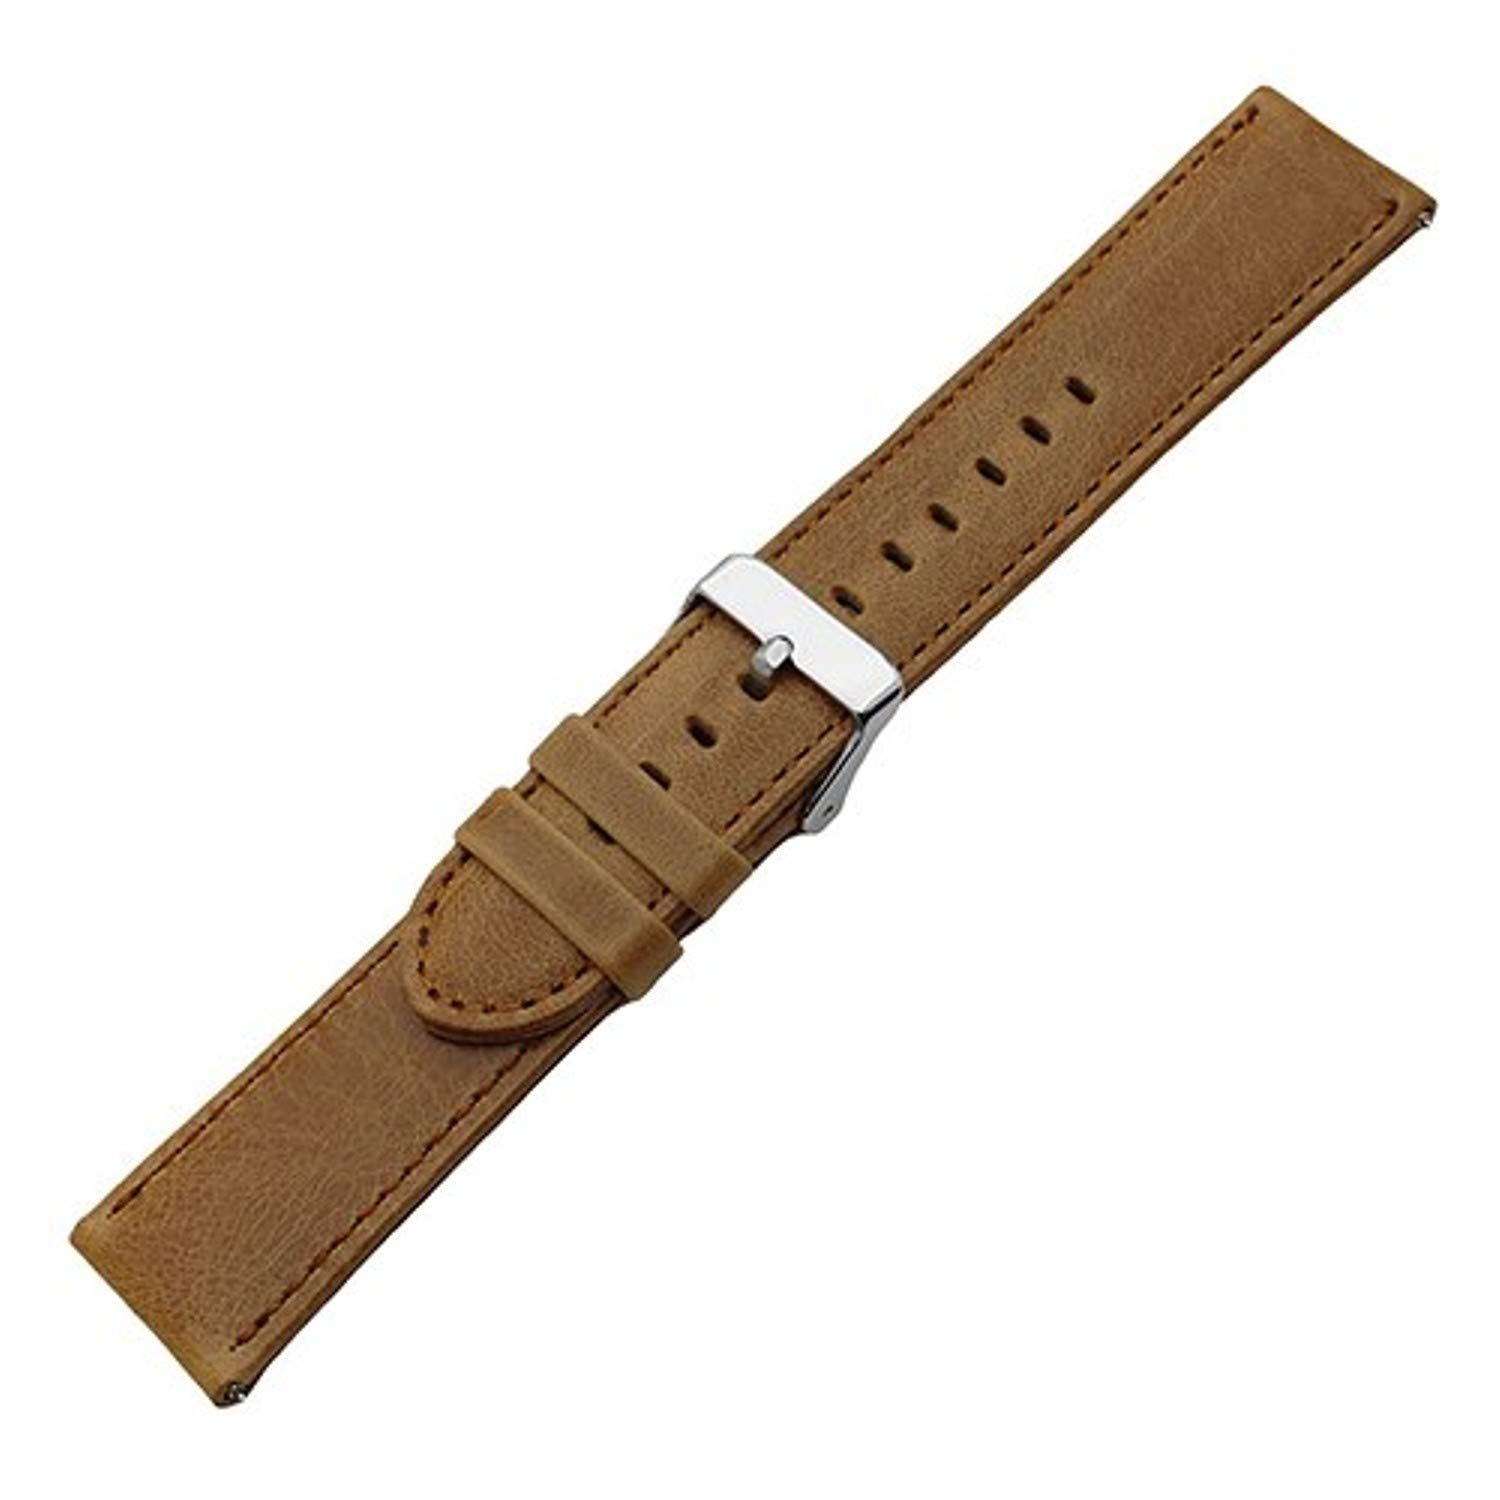 Jewh Leather Watch Band - Leather Watch Band for Pebble Time/Steel - 22mm Quick Release Belt - Wrist Strap Loop - Bracelet Black Brown Men Women + Spring Bar Smartwatch Bracelet (Light Brown P)